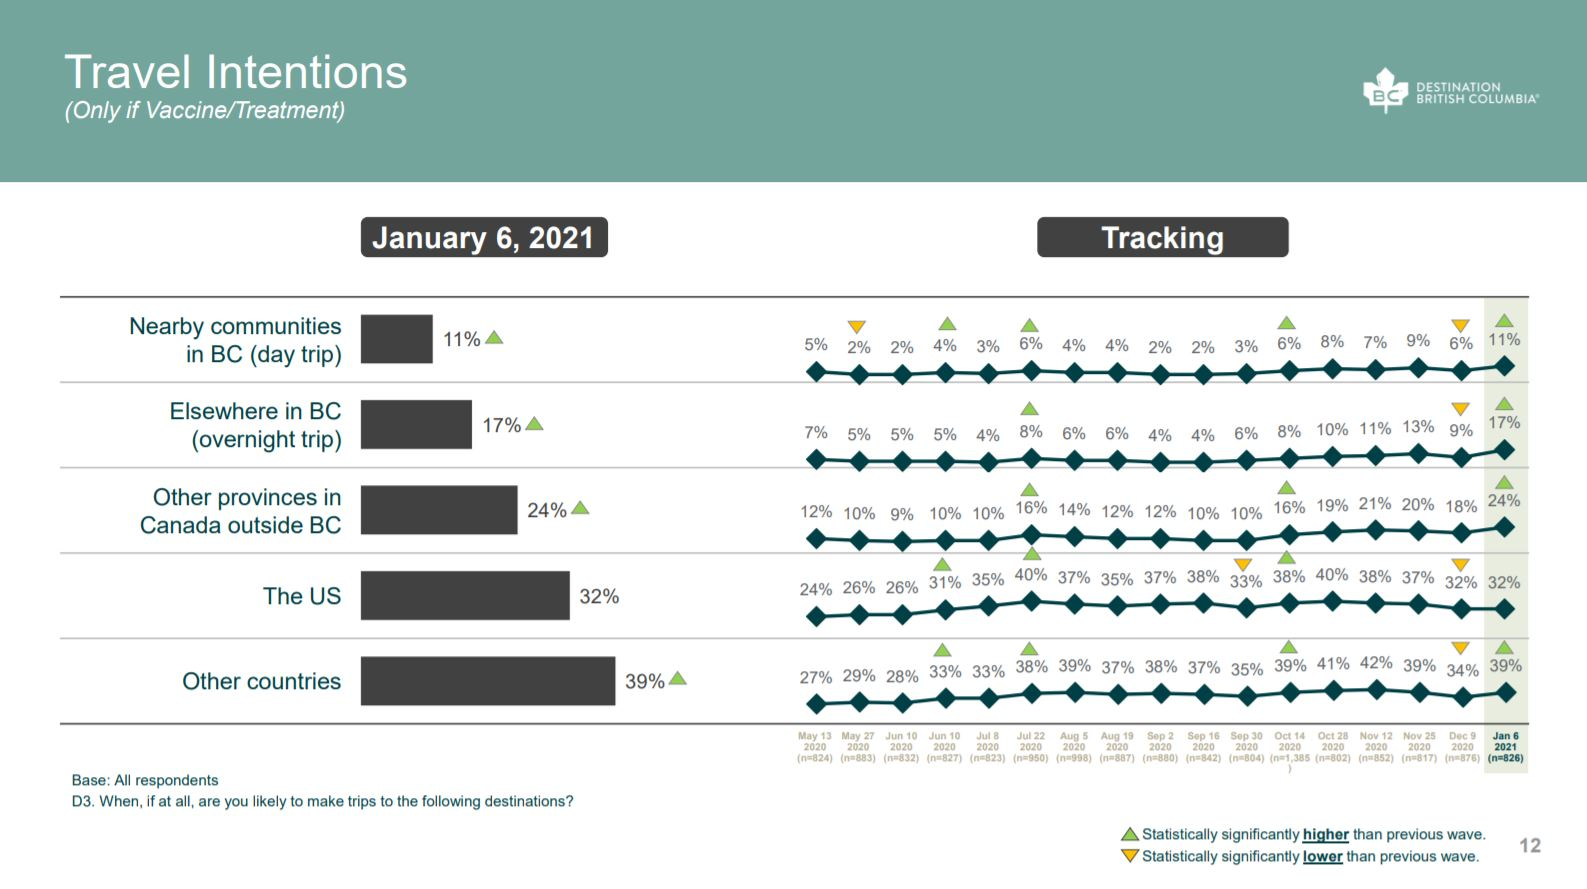 BC's Residents Public Perceptions COVID-19 Travel and Tourism: Wave 17 Report